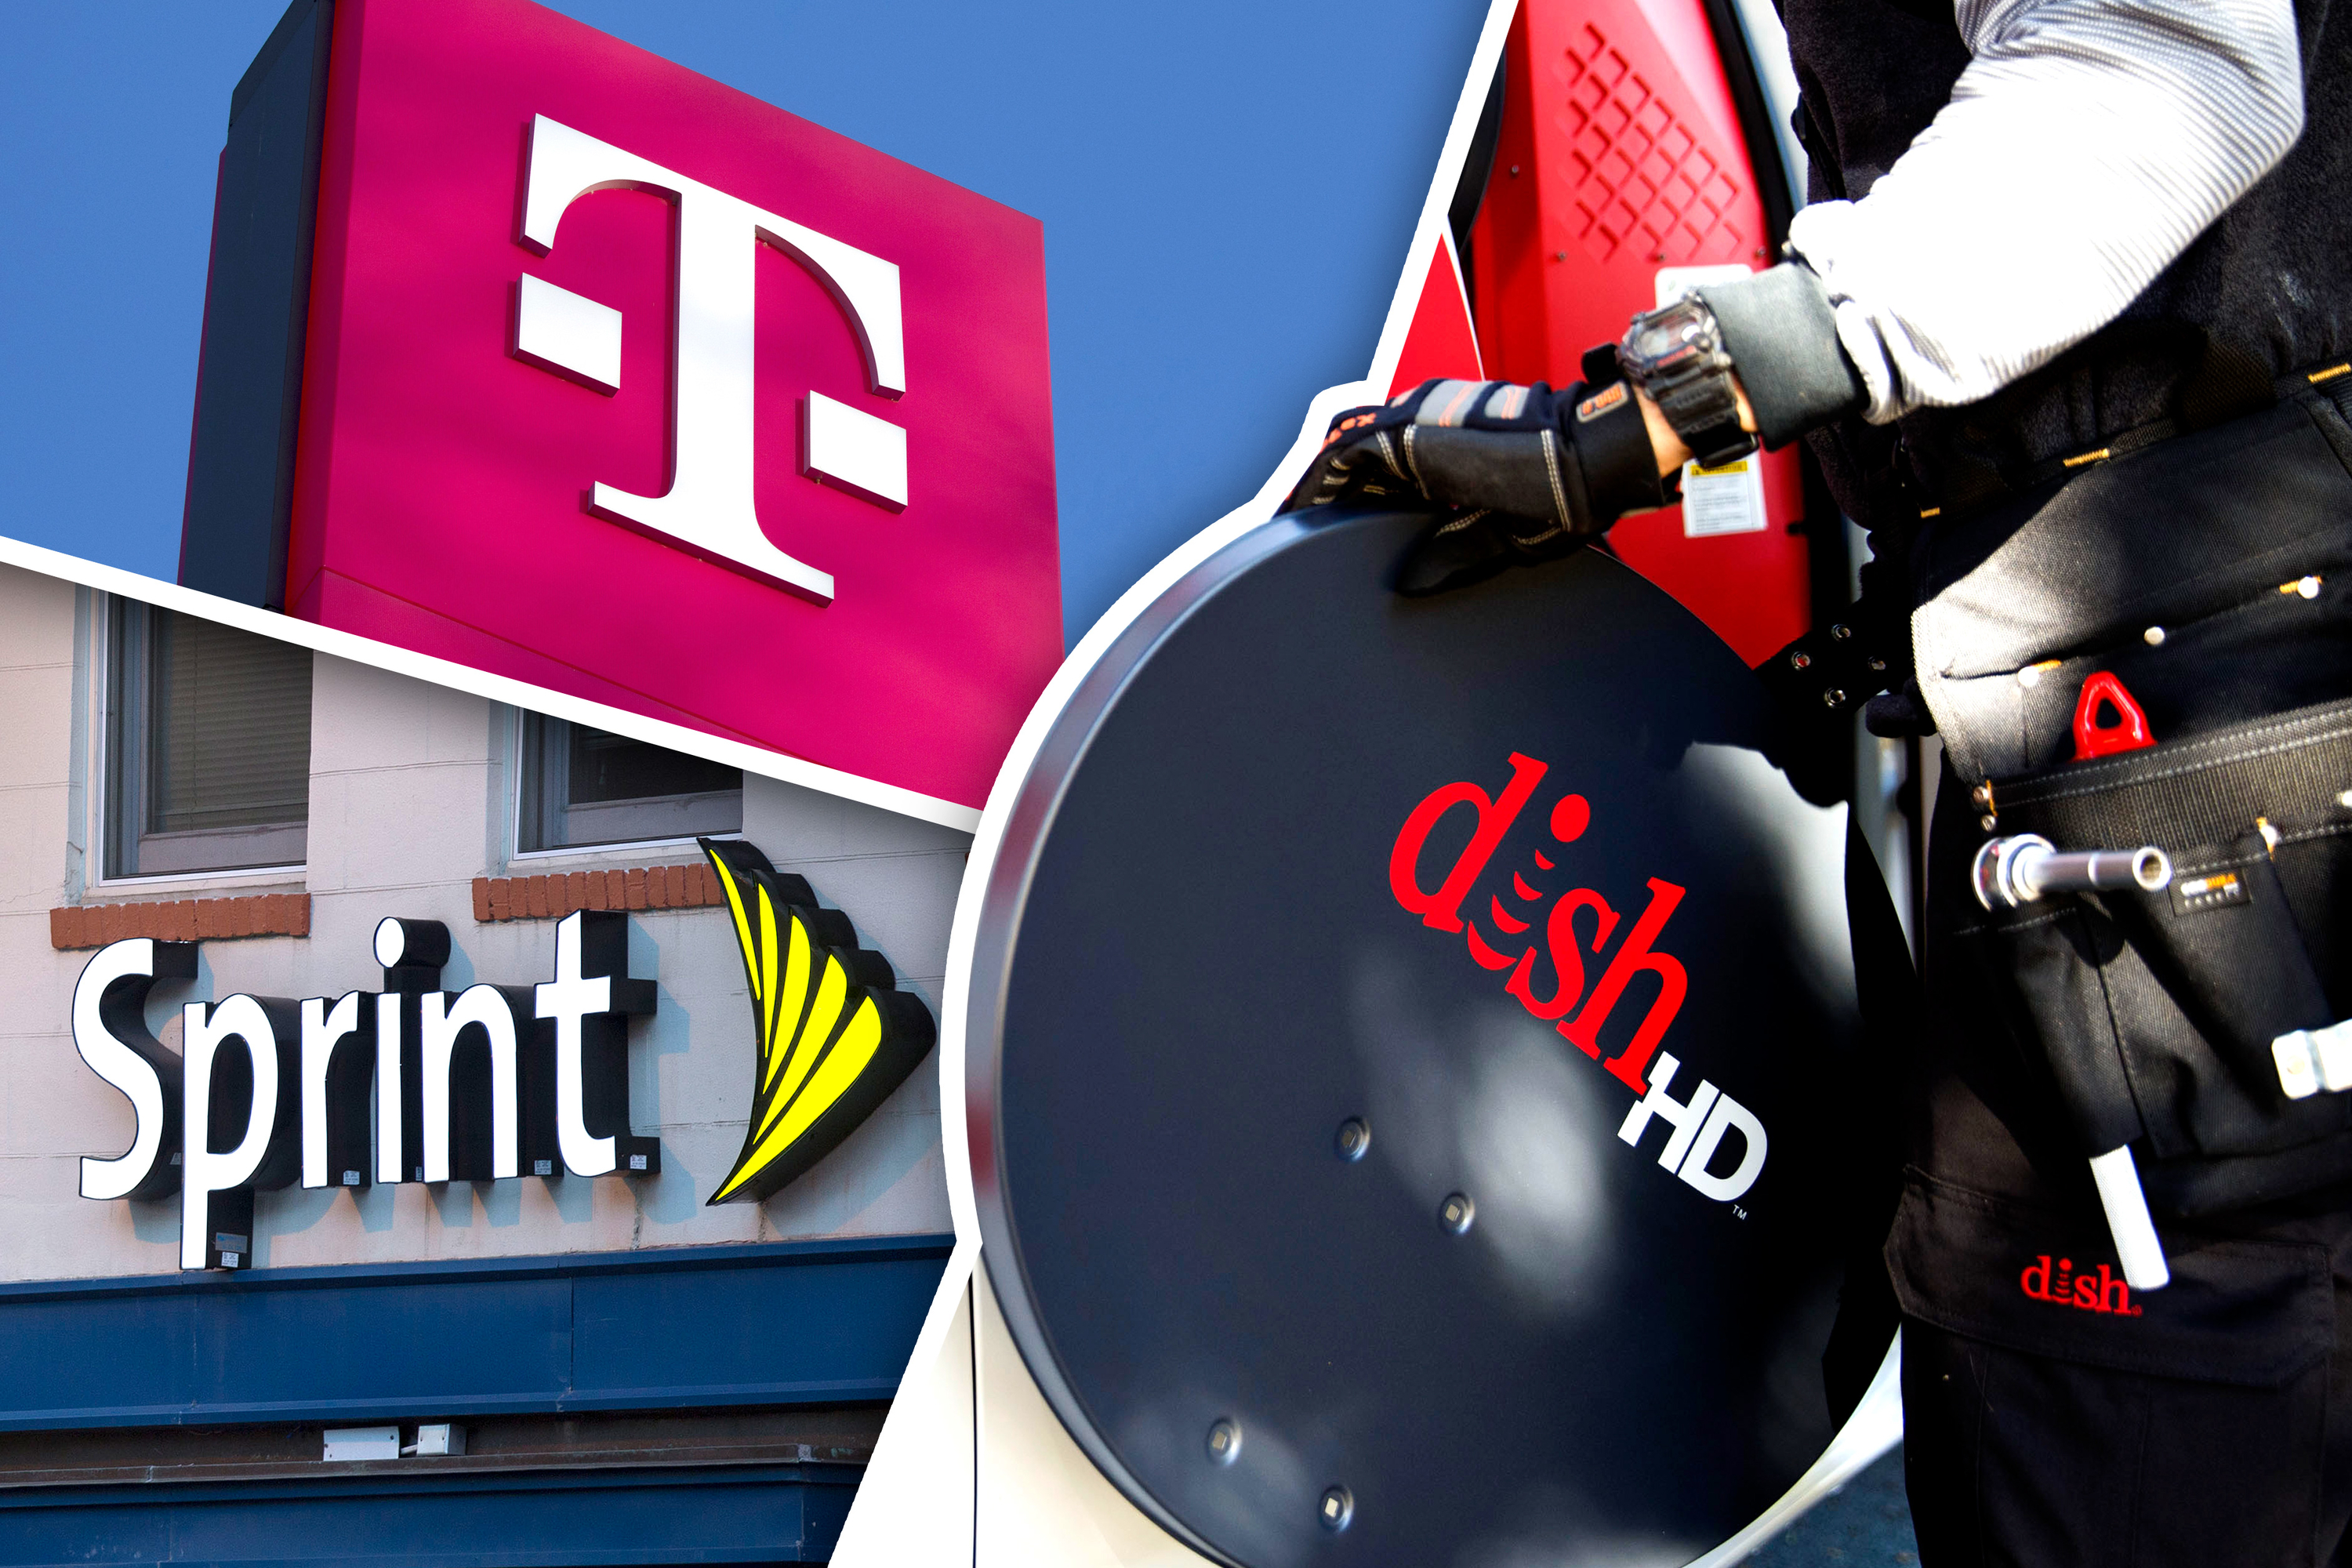 Dish reportedly has agreed to a $5 billion deal for wireless assets